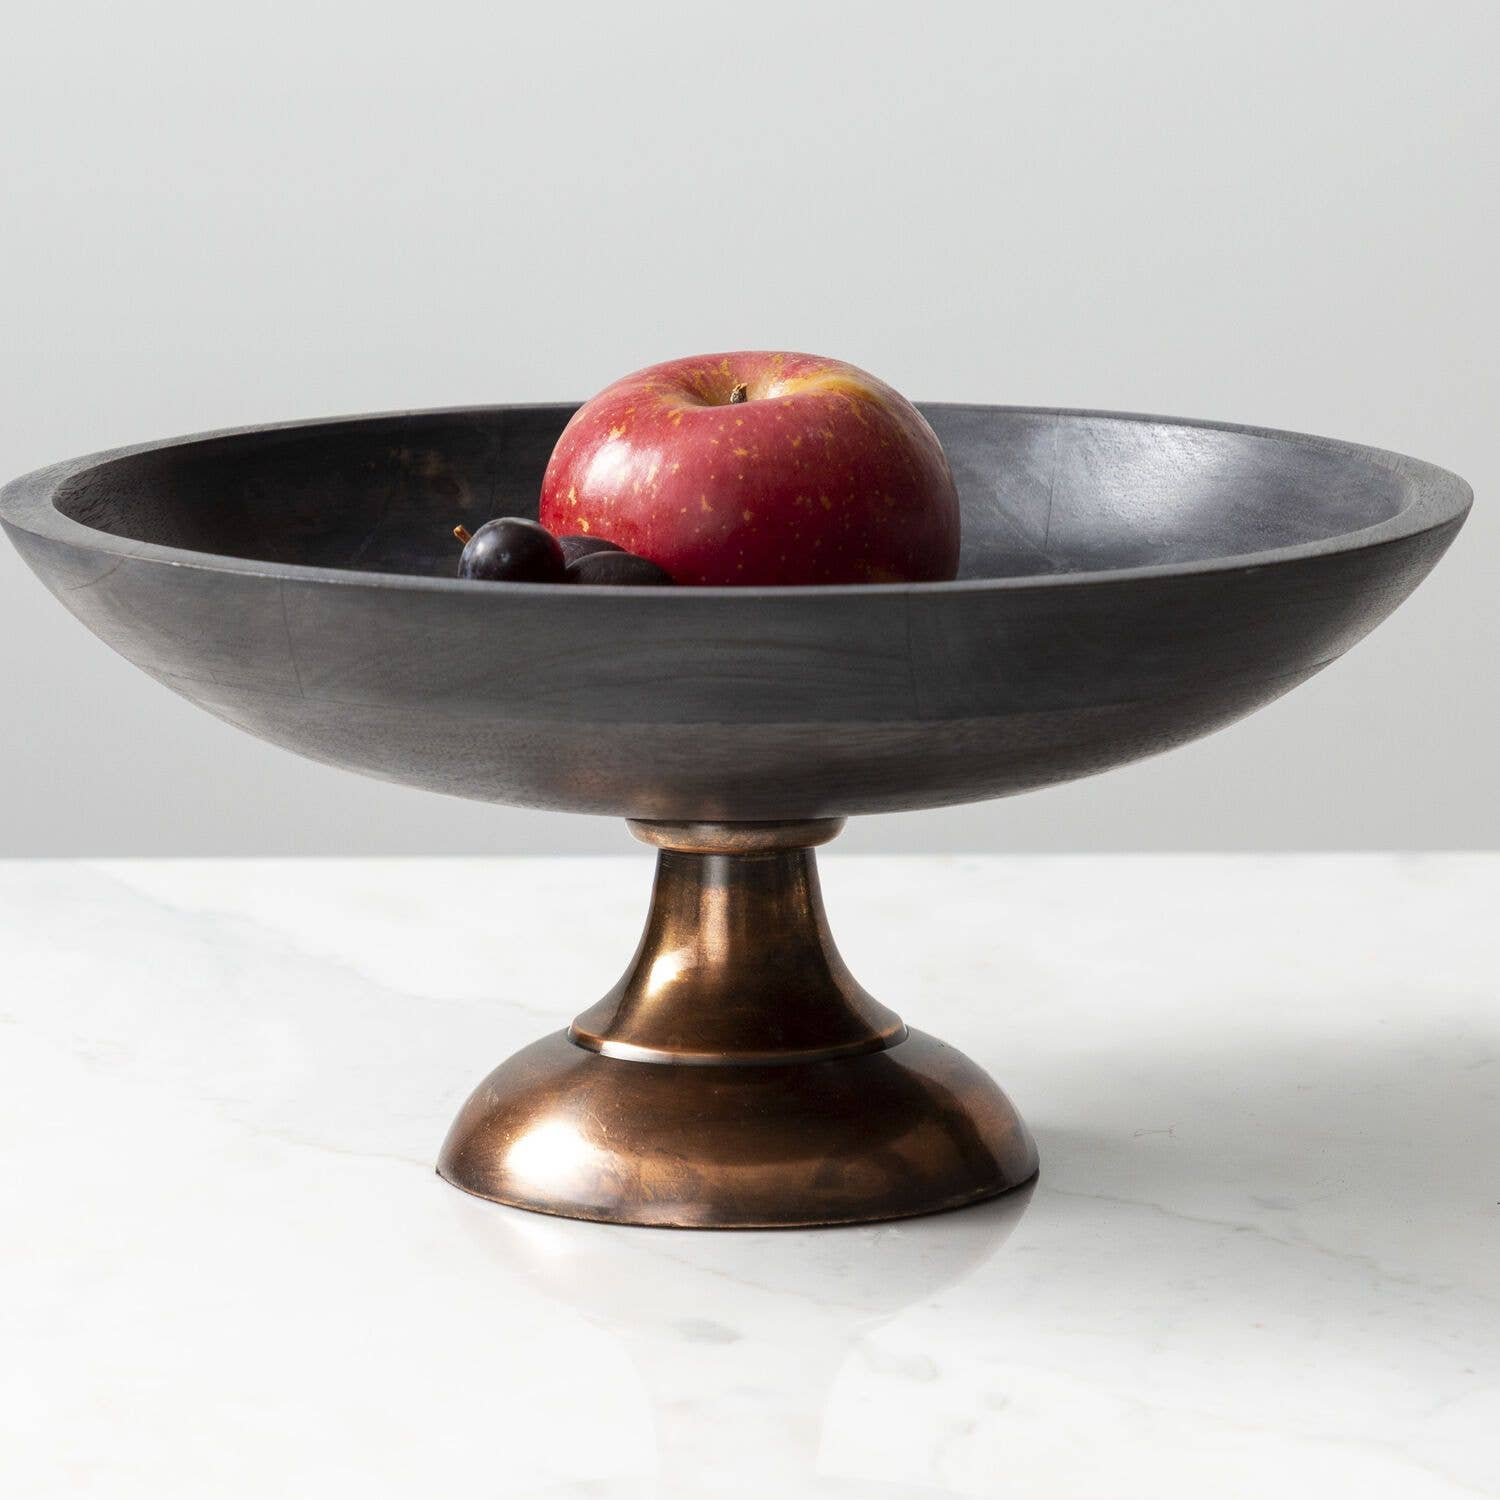 Made Market Co Pedestal Dark Wash Bowl